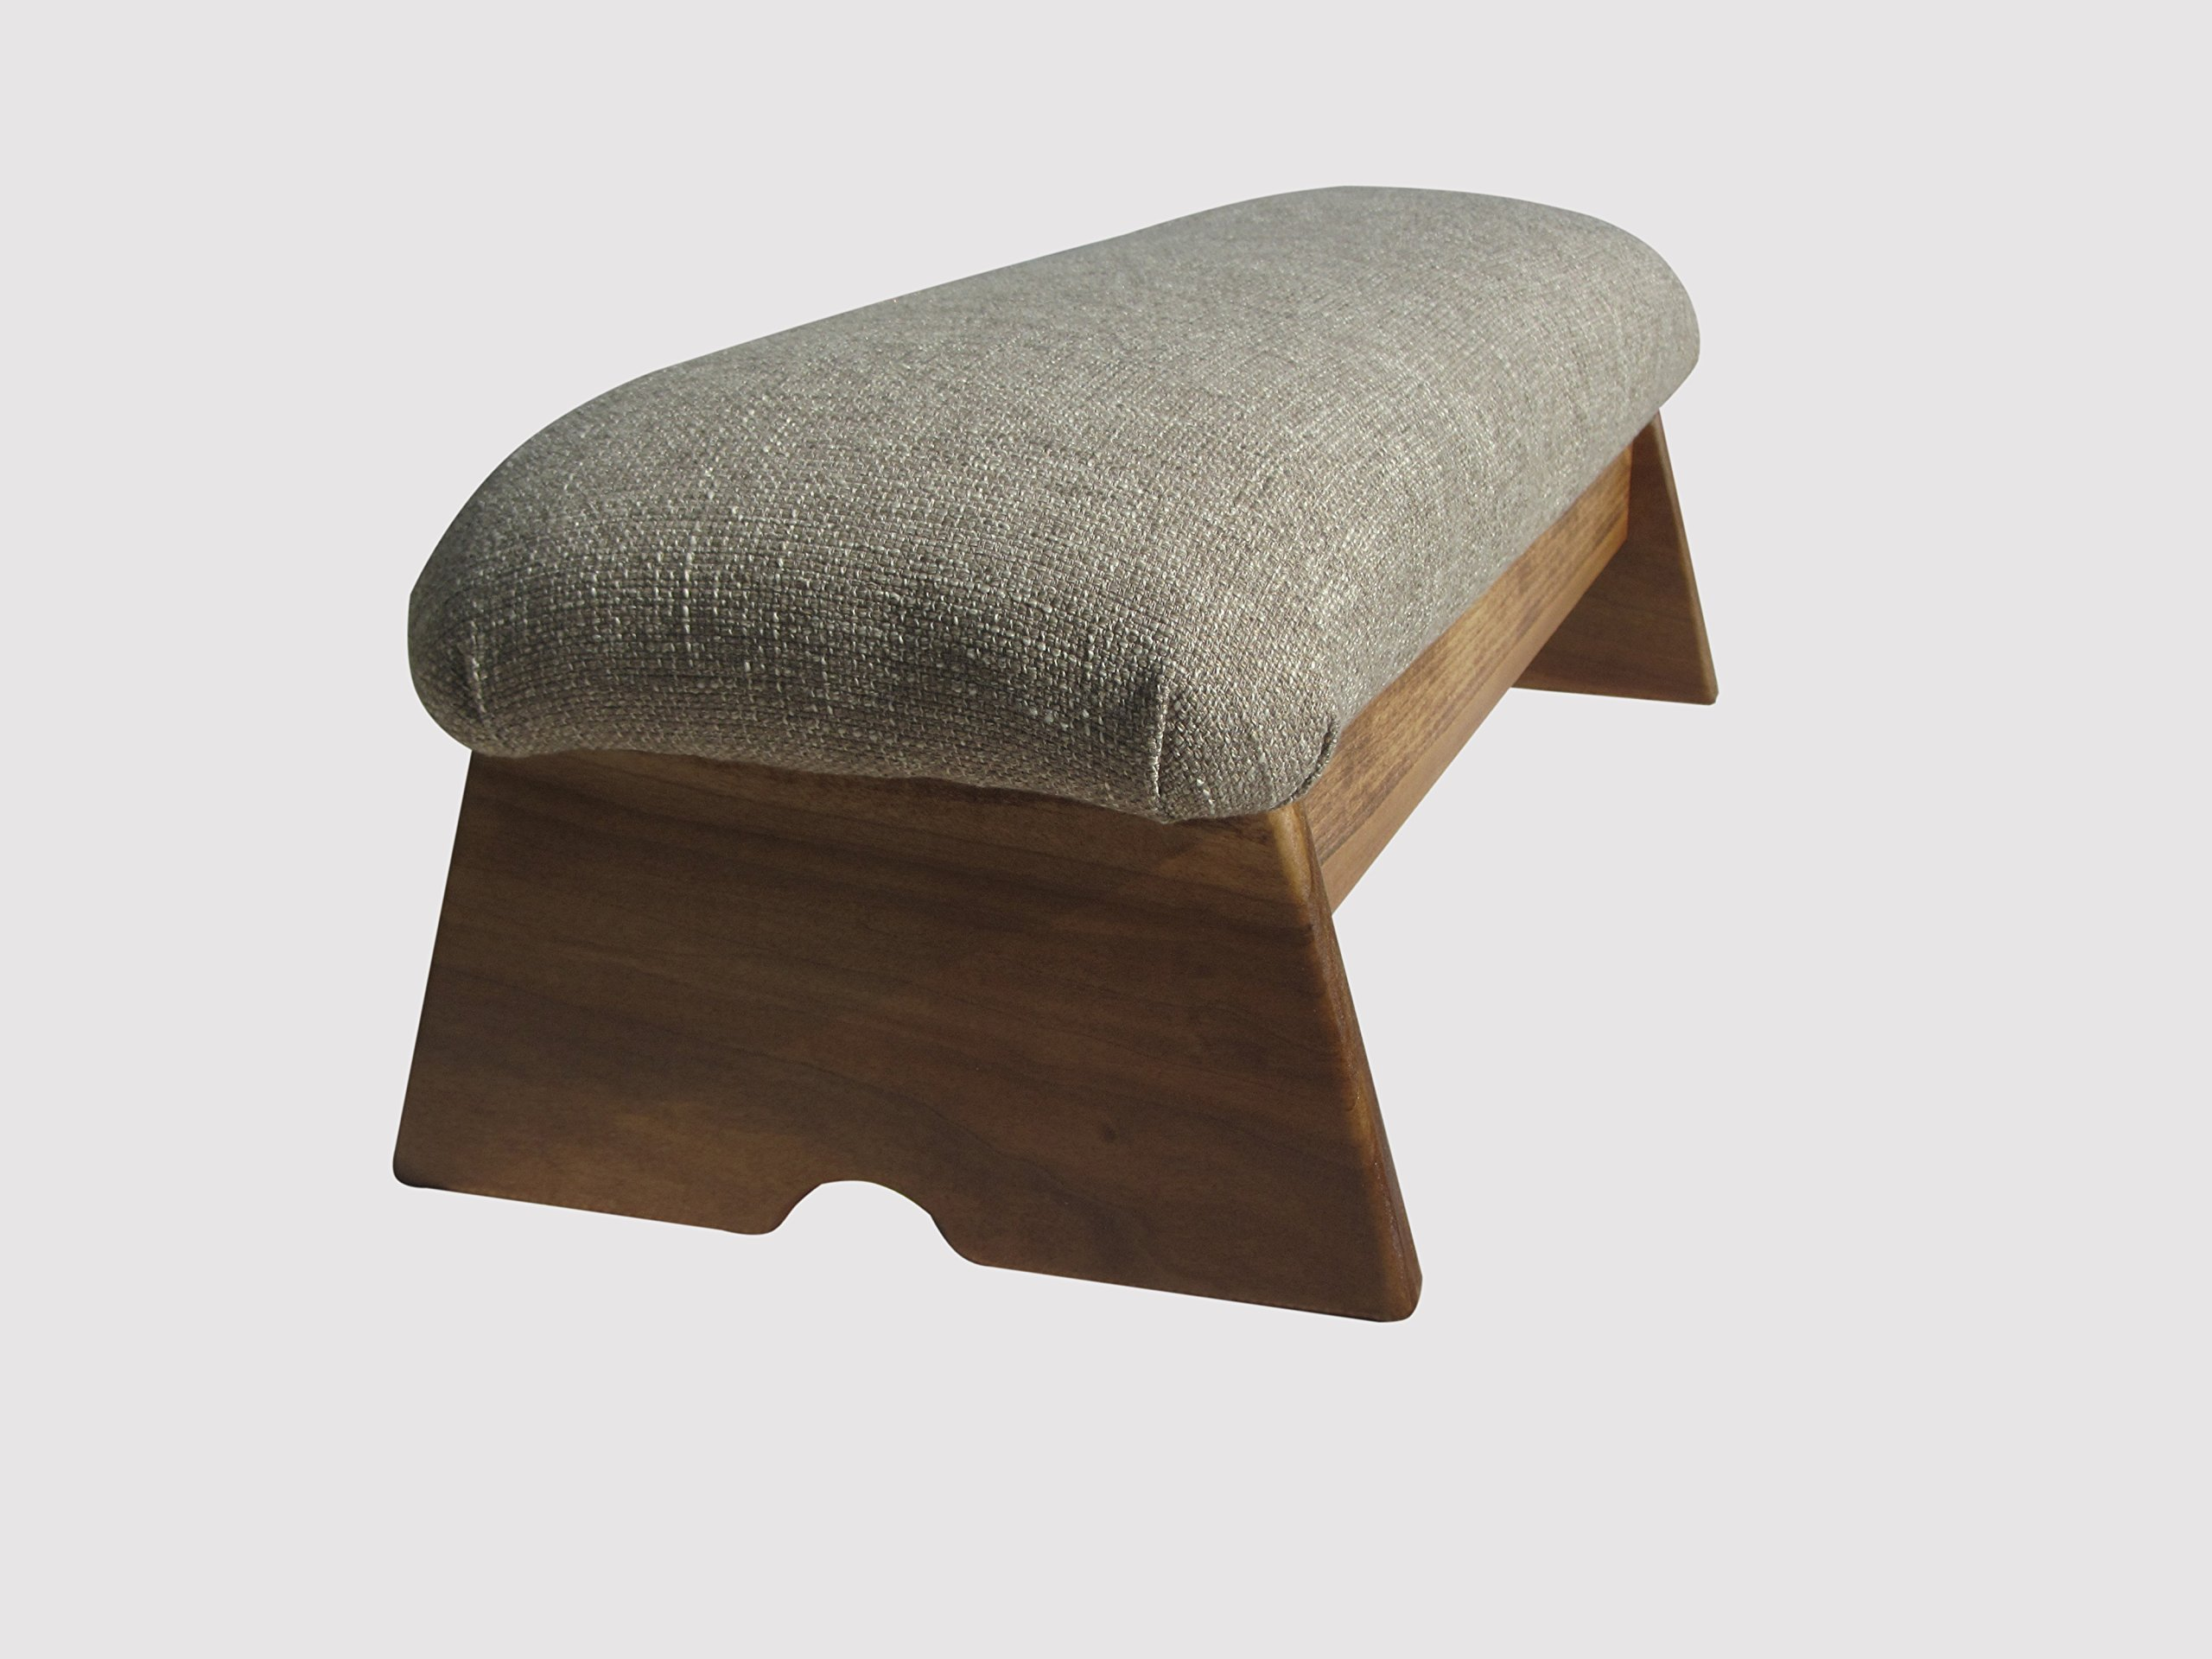 Padded Stability Bedside Foot Stool, Maple Stain, 9'' Tall (Made in the USA) (Desert Sand - 9'')